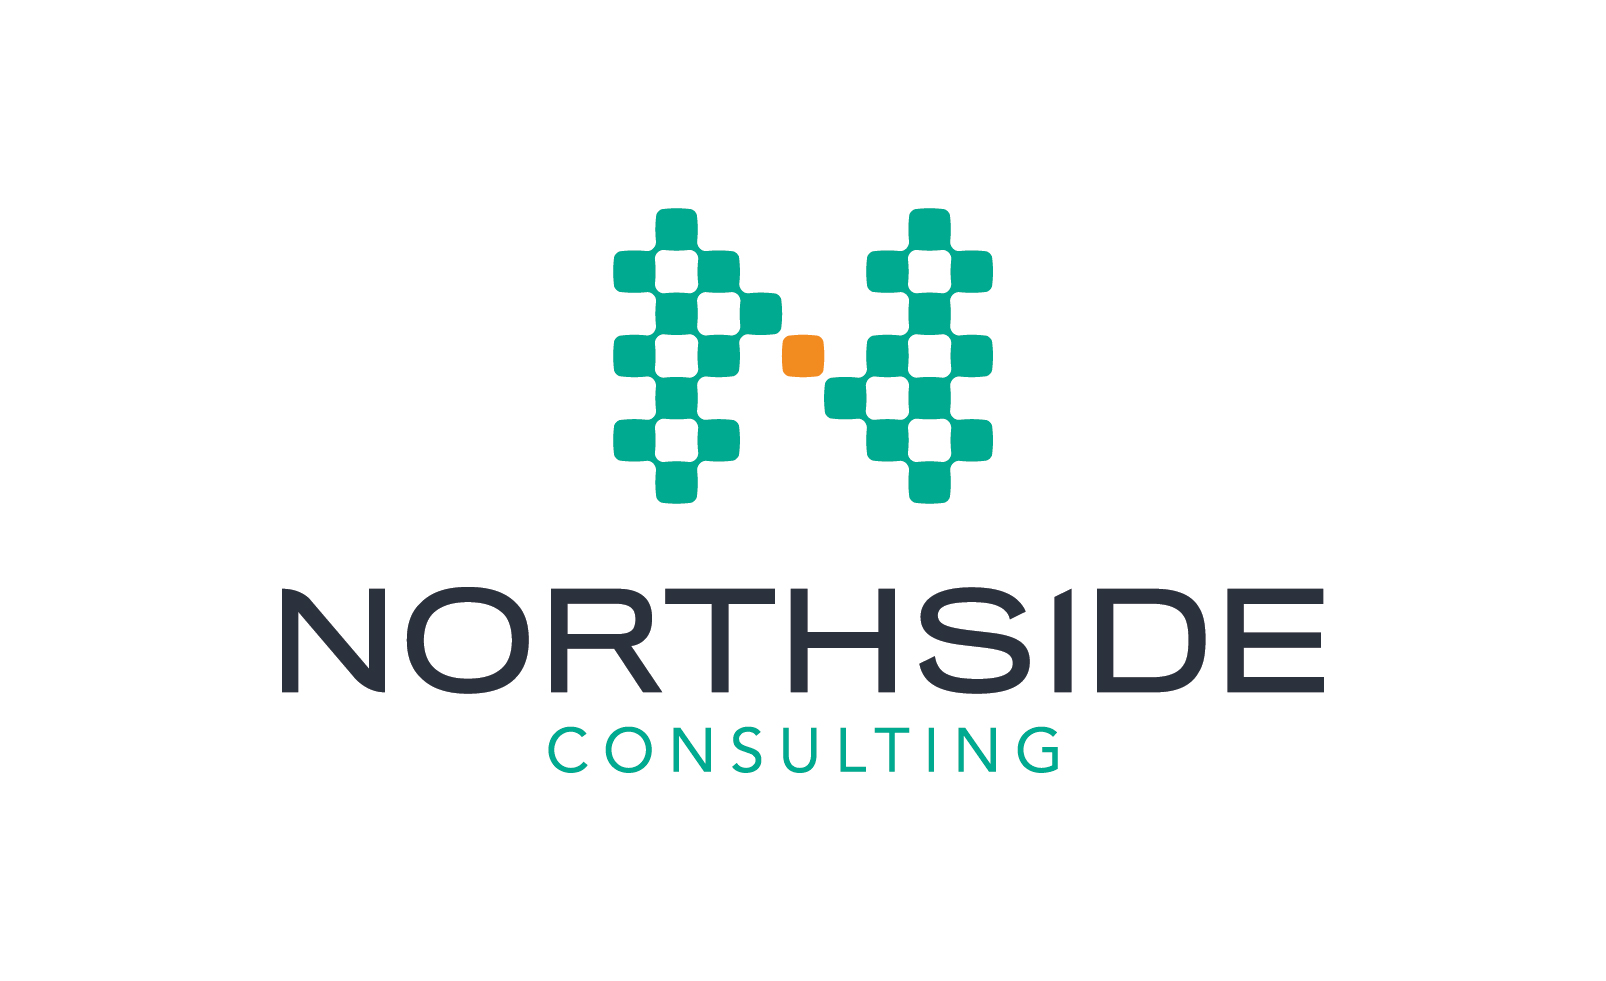 Northside Consulting